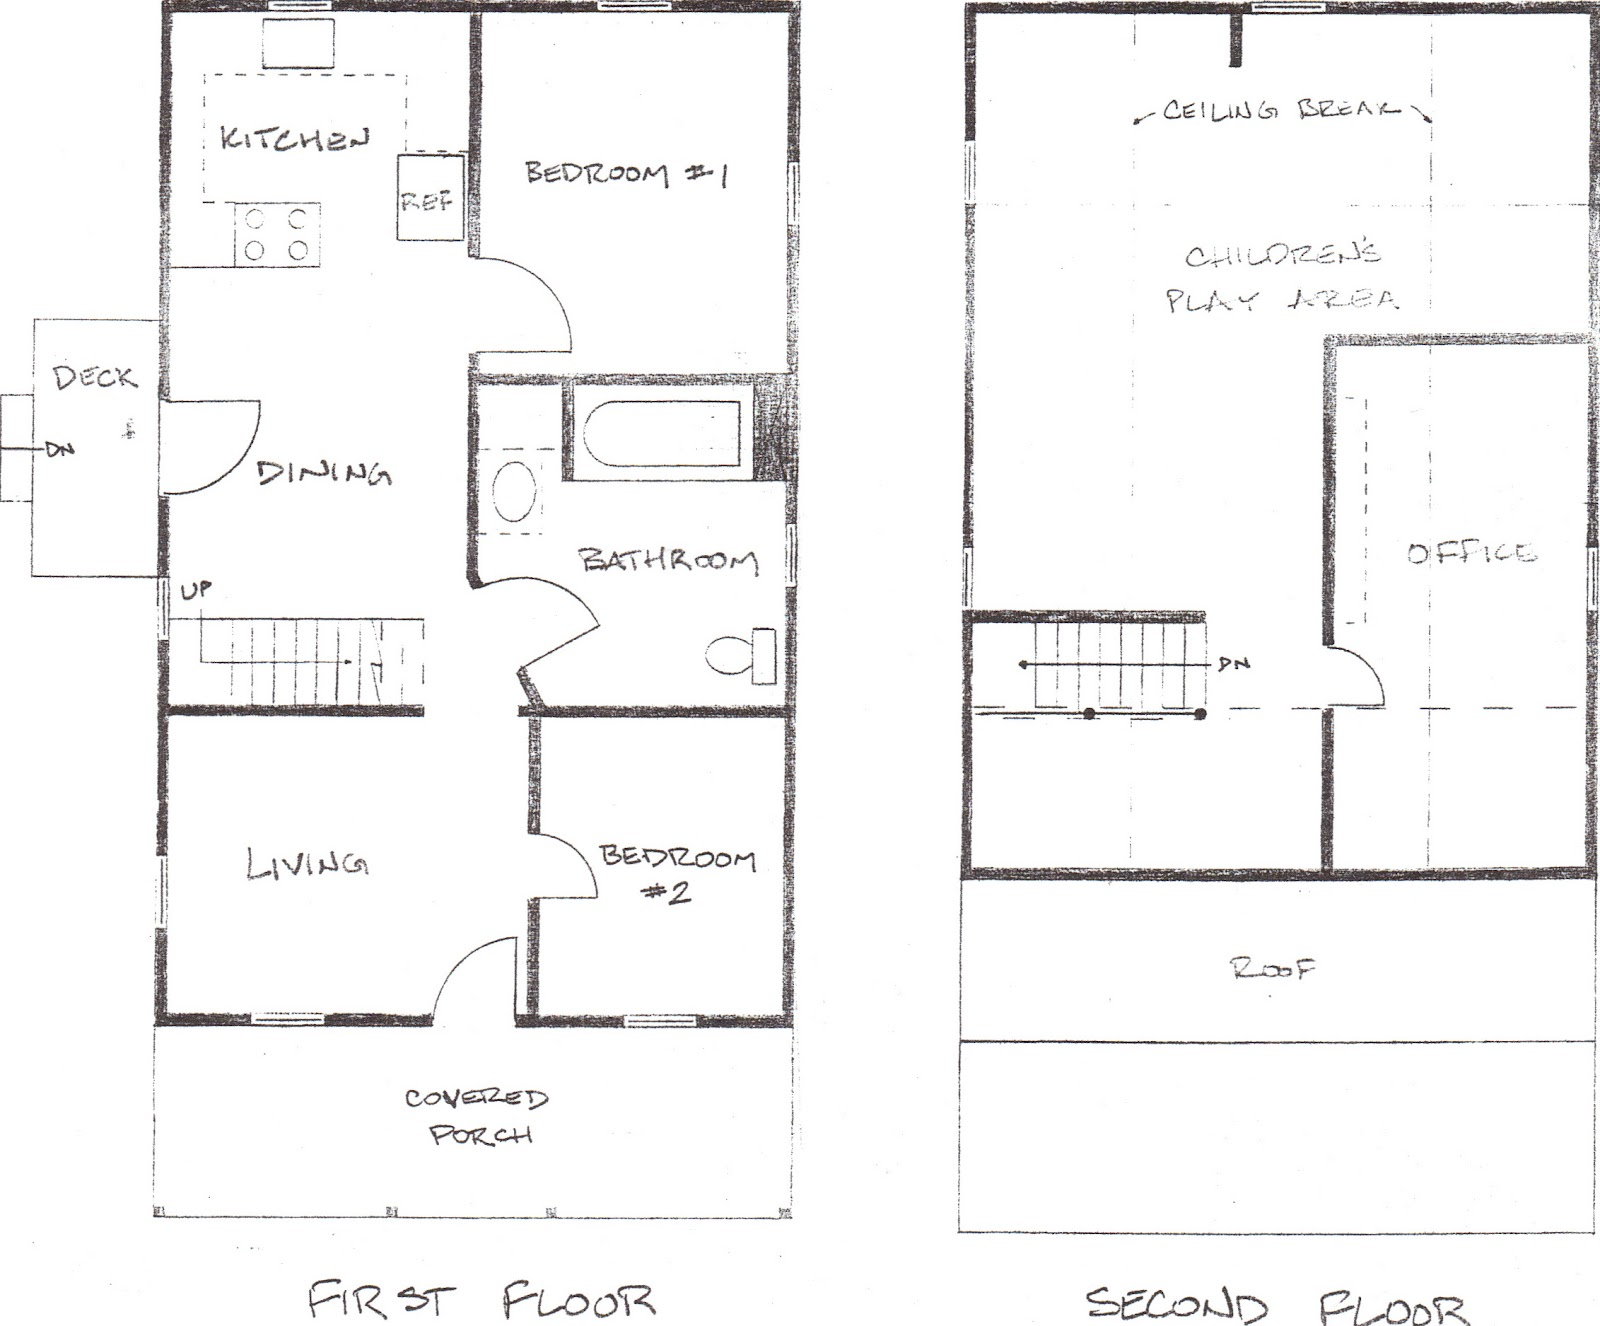 Endoscopy Room Layout further Optometry Office Design furthermore Chiropractic Office Floor Plans also X Ray Darkroom Floor Plan in addition Small Dental Office Layout. on chiropractic office layout plans